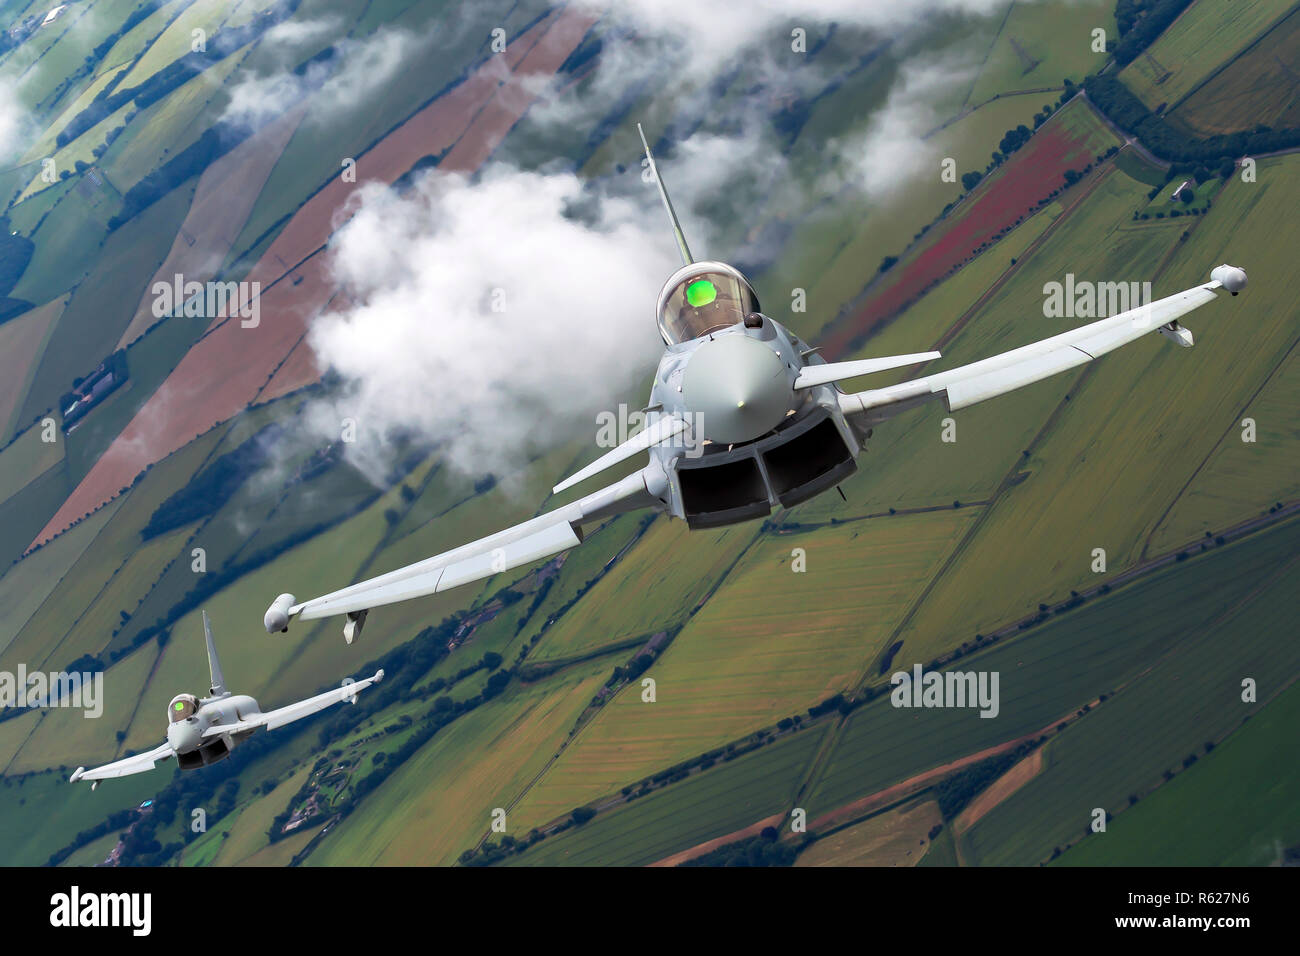 Royal Air force (RAF) Eurofighter Typhoon in flight. A twin-engine, canard-delta wing, multirole fighter. Photographed at Royal International Air Tatt Stock Photo